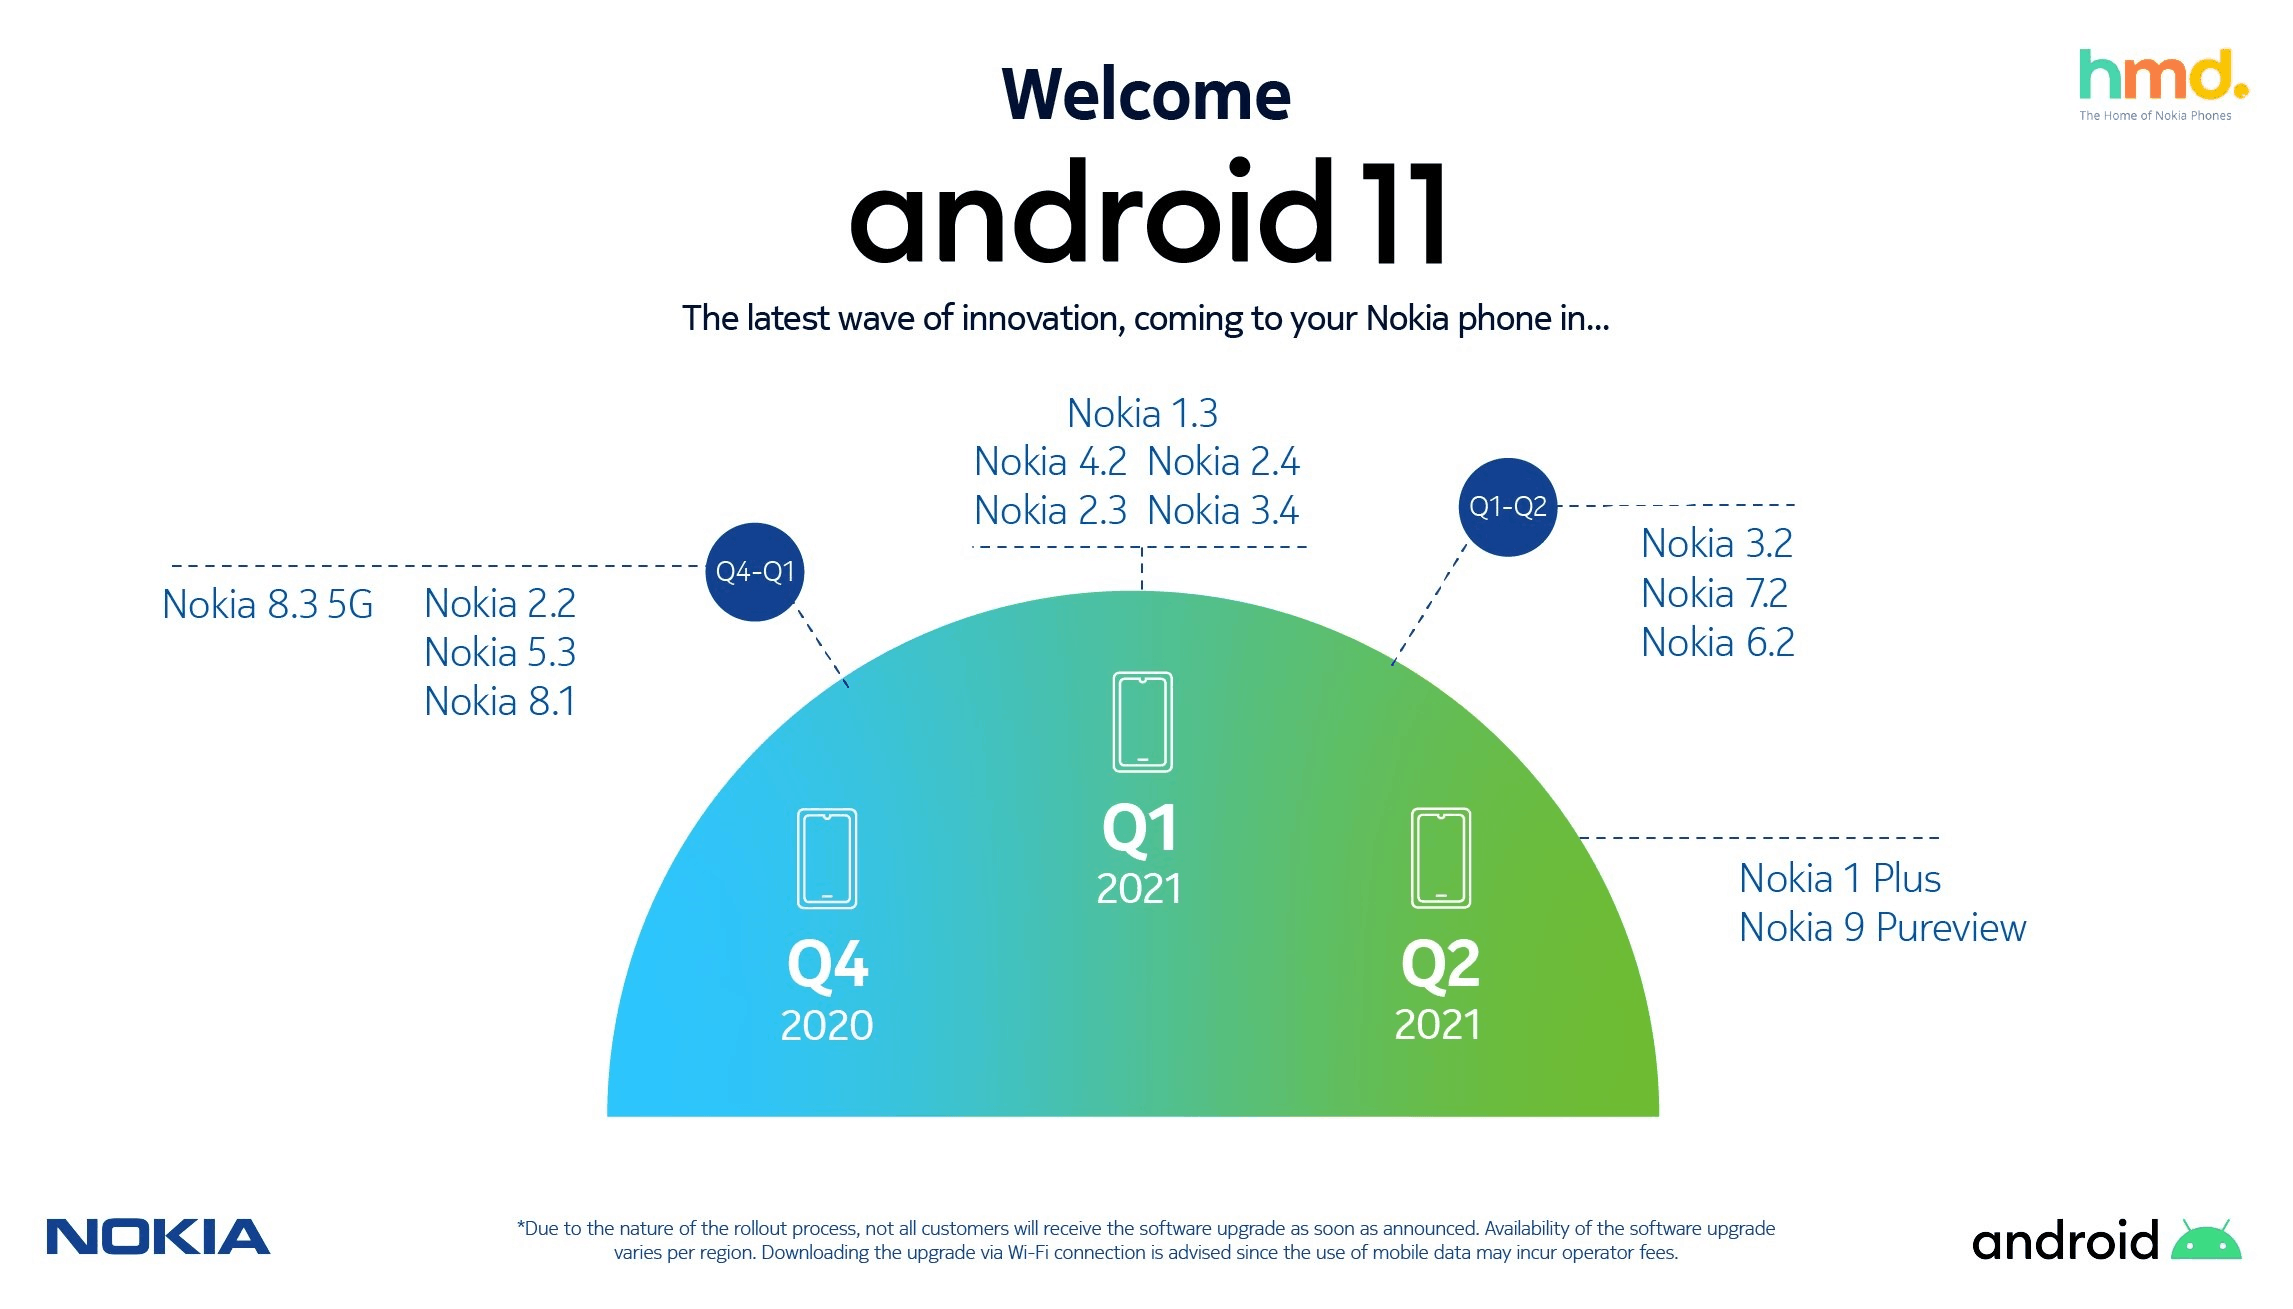 Nokia Android 11 update roadmap official